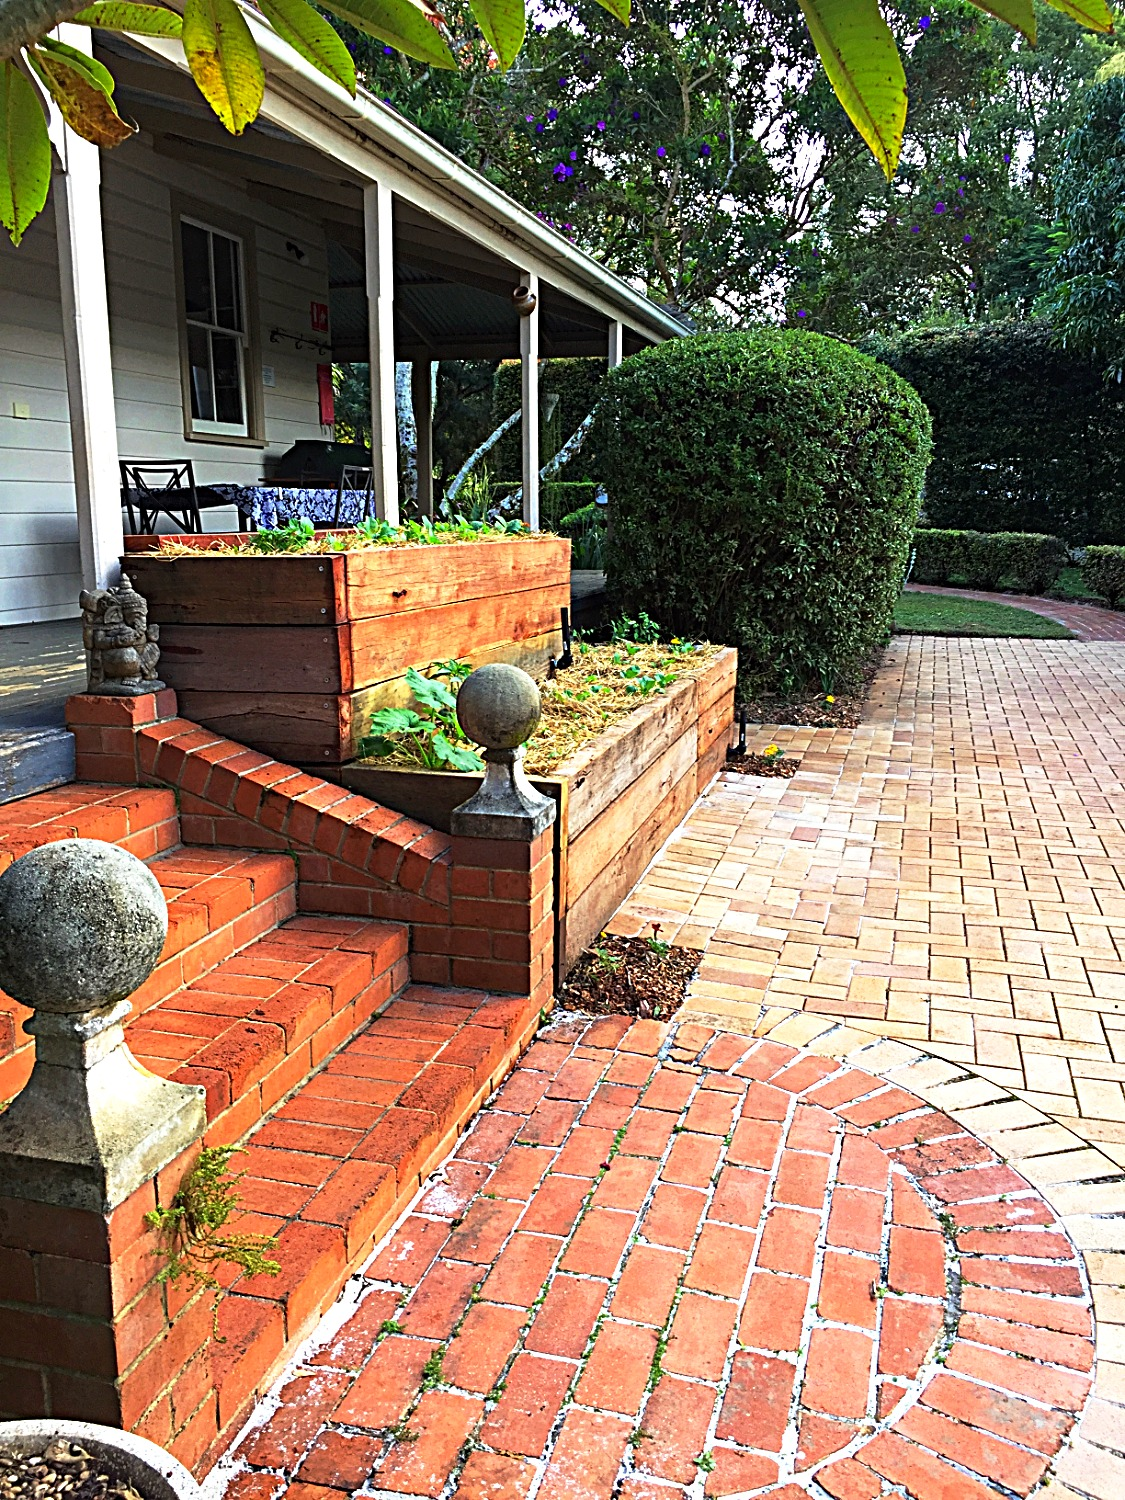 Wicking veg beds - Federal residence